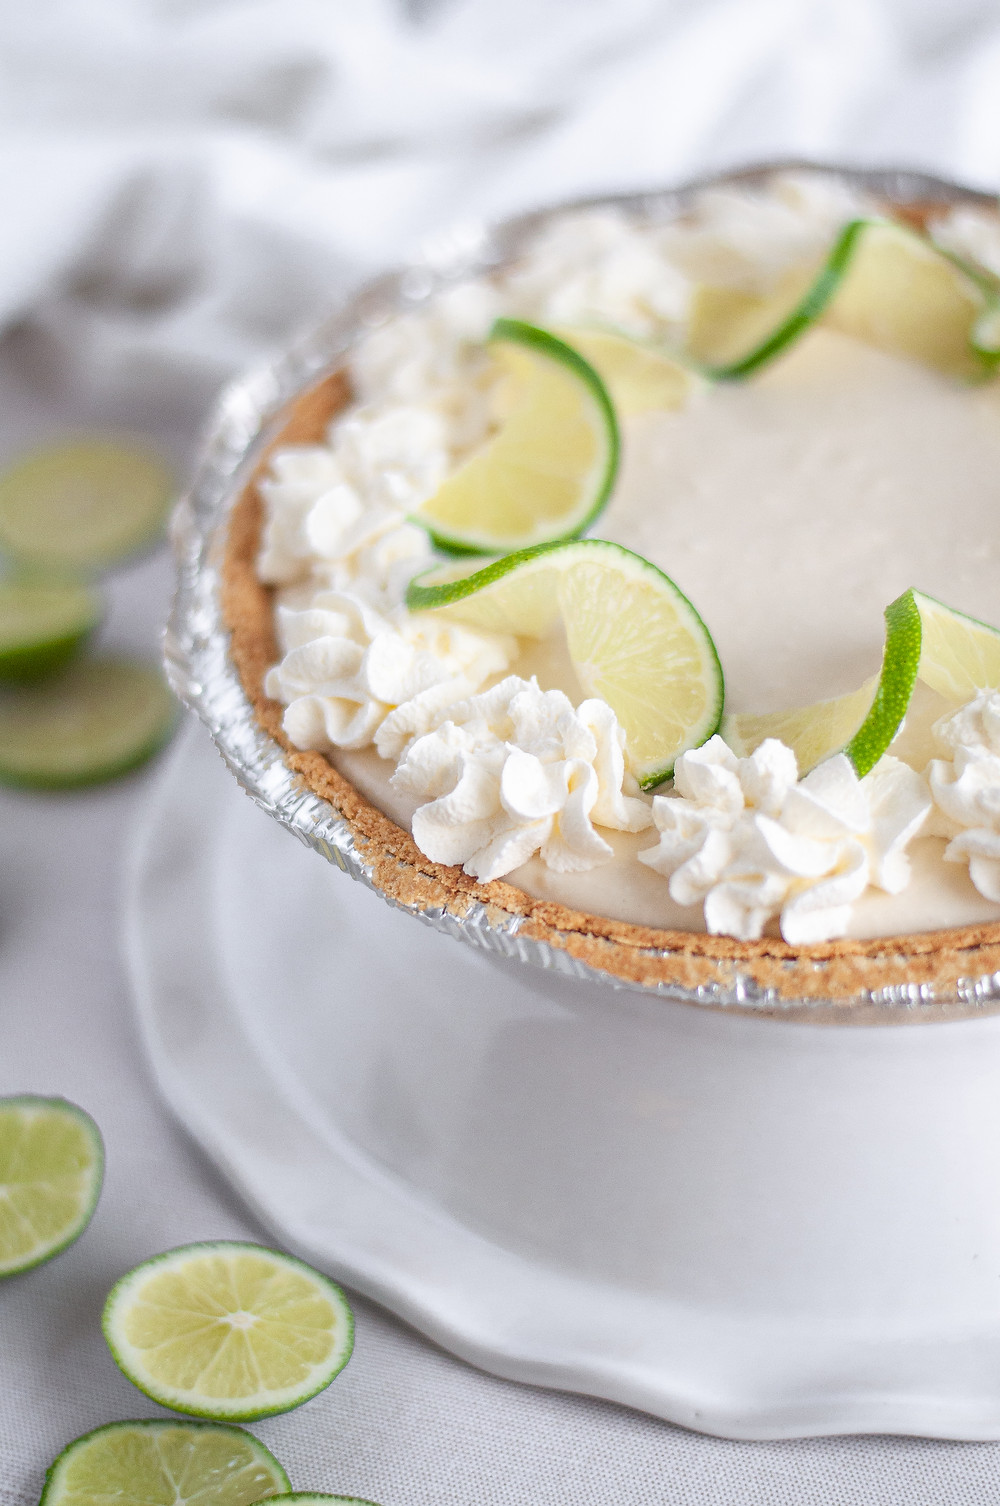 45-degree view of this easy key lime pie recipe made and sitting on top of a white ceramic pie plate. The no bake key lime pie is surrounded by additional lime slices and a white napkin.